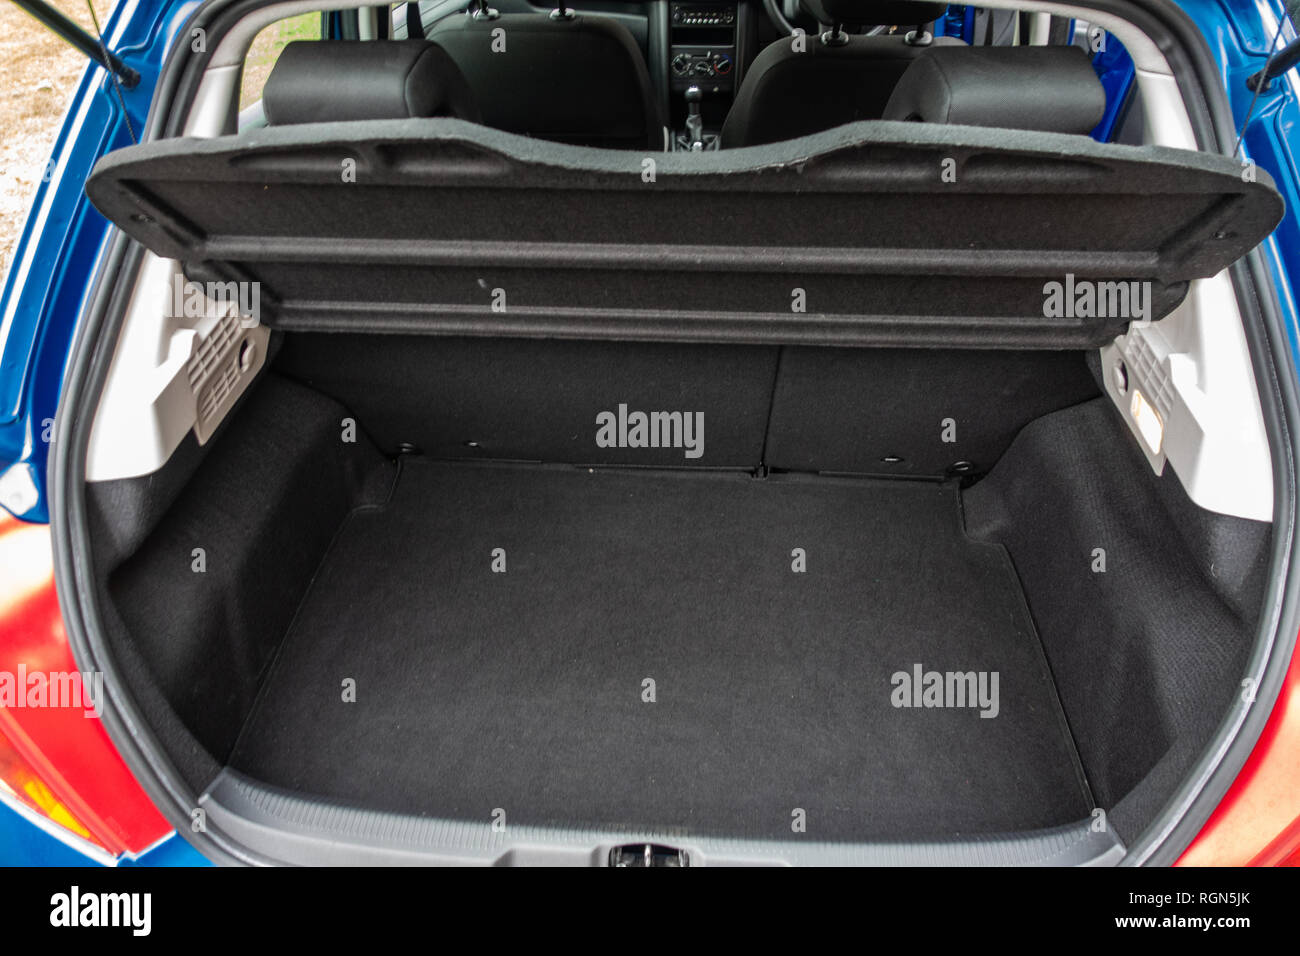 Empty space in the boot space of  a Peugeot 207 5 door 2009 car in England Stock Photo